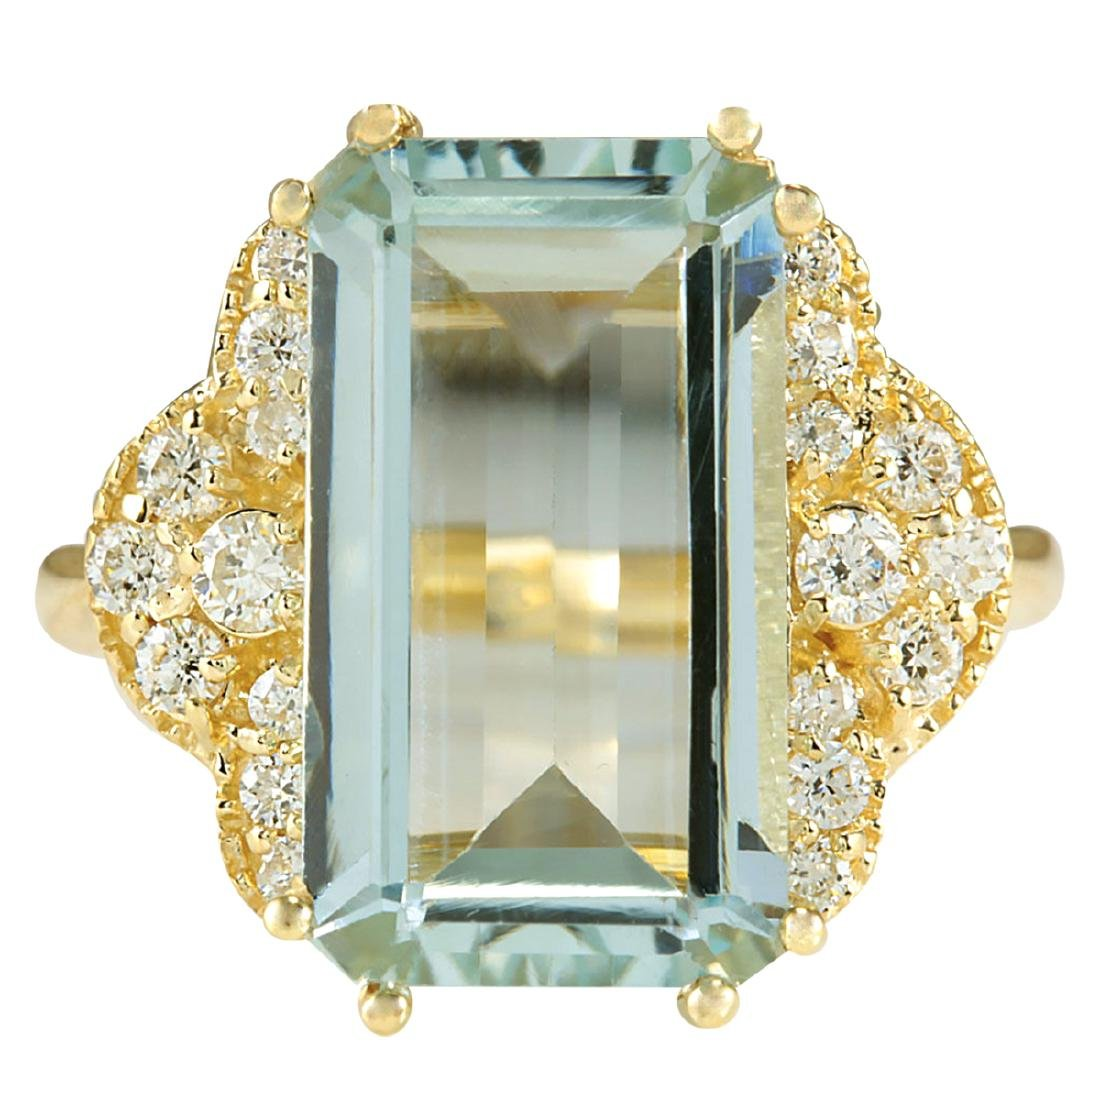 6.37CTW Natural Aquamarine And Diamond Ring In 18K